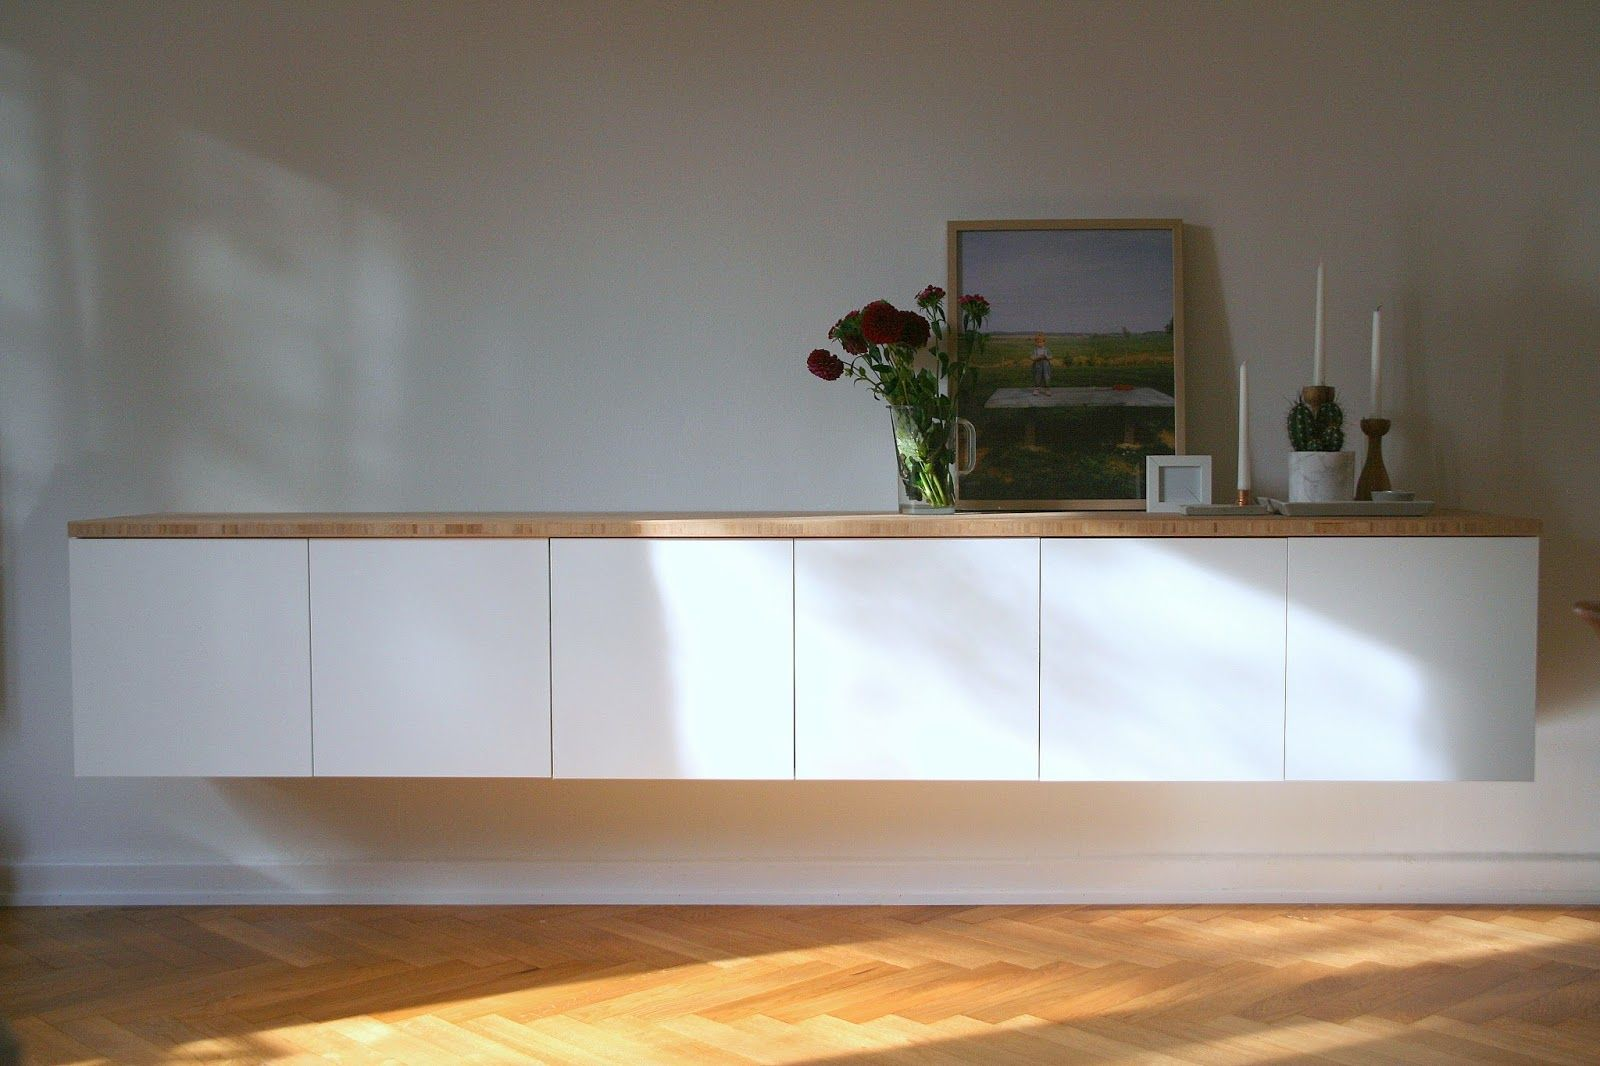 Credenza From Ikea : Diy sideboard ikea hack vida*nullvier hacks pinterest